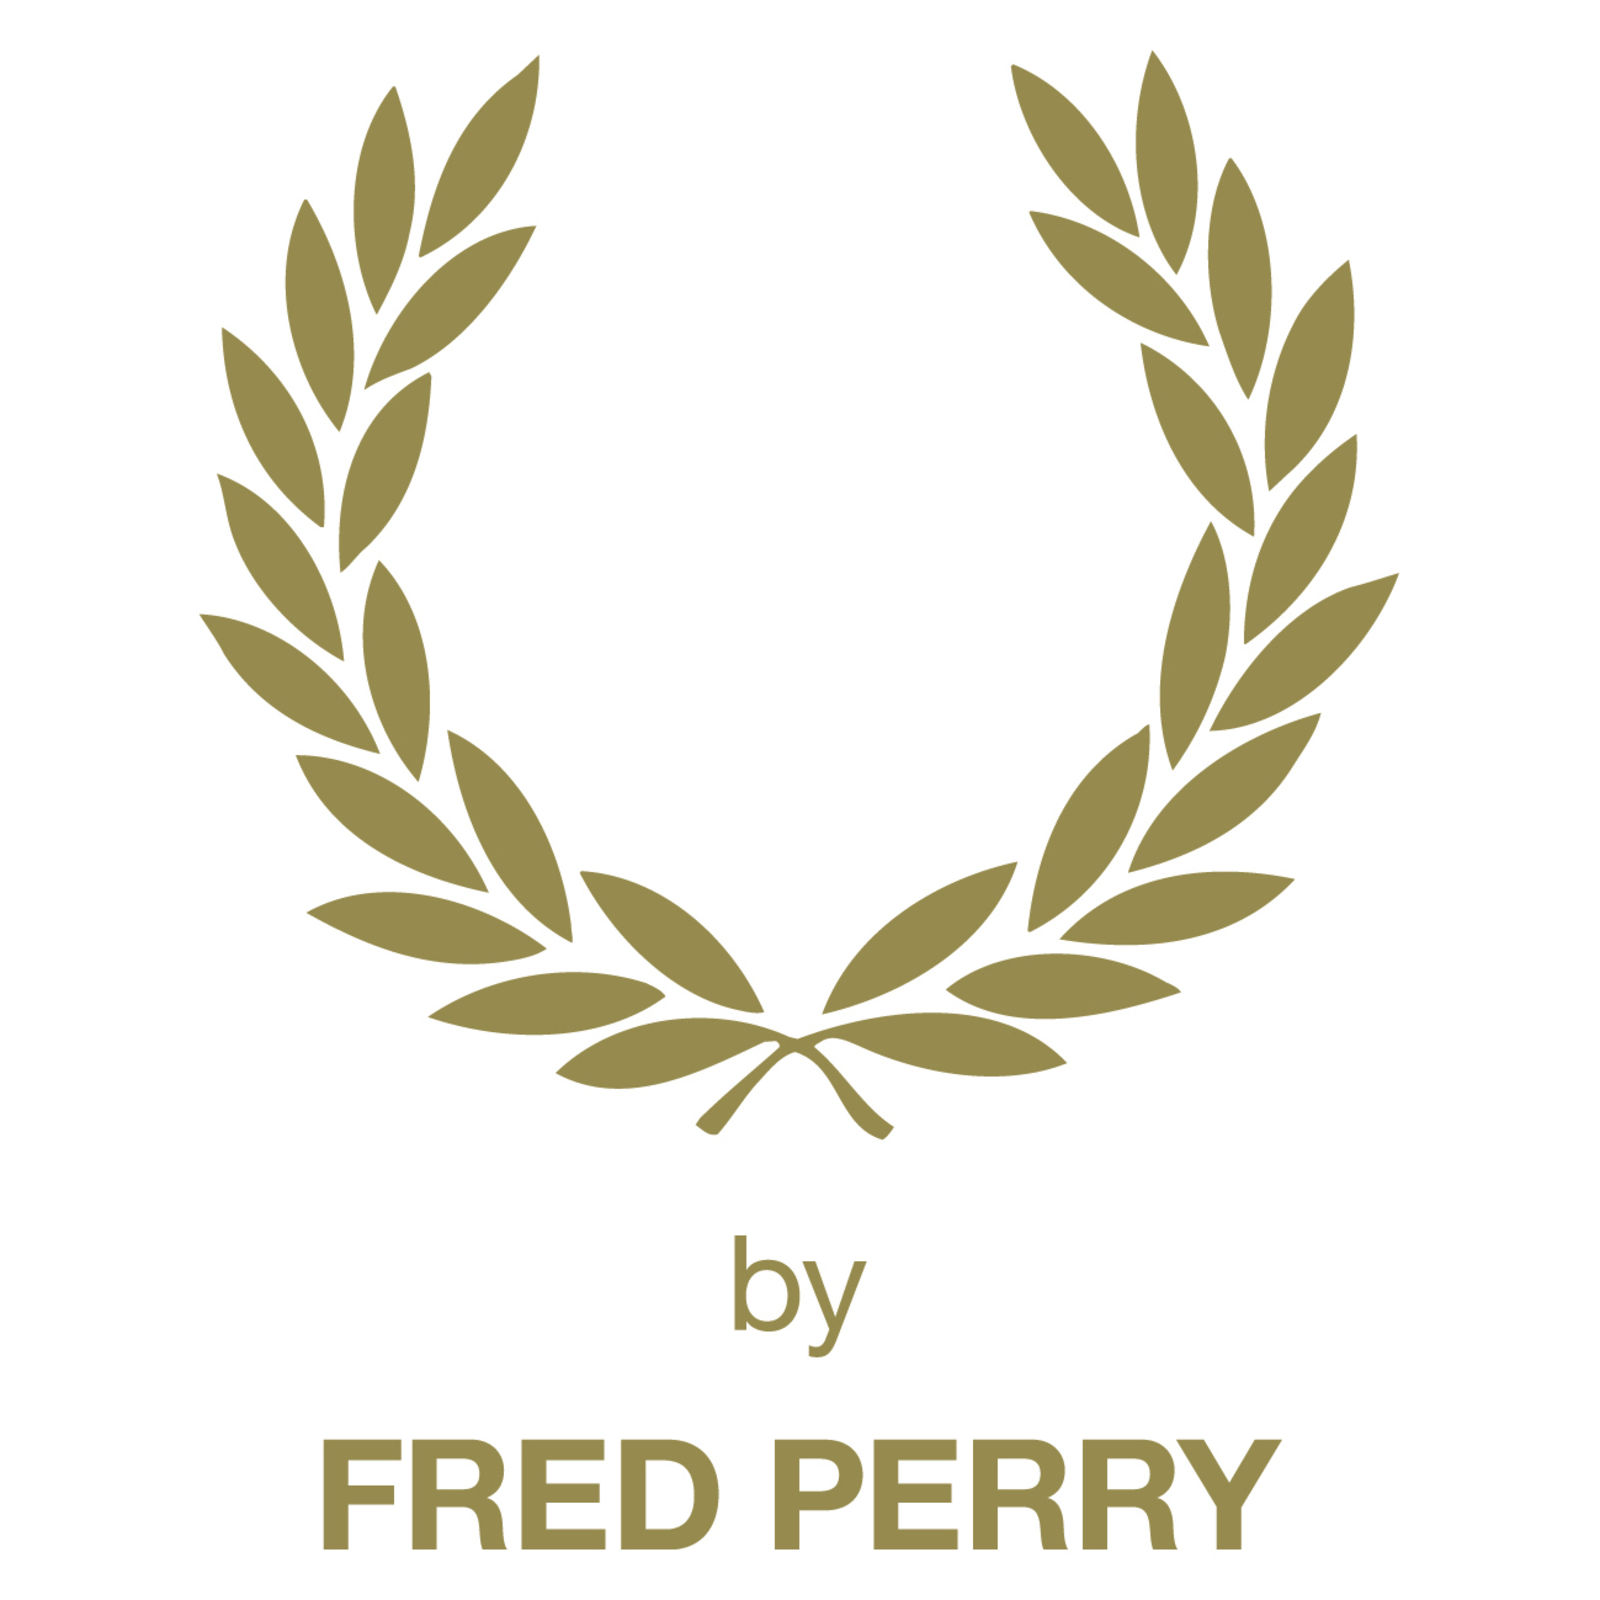 FRED PERRY Laurel Wreath (Изображение 1)